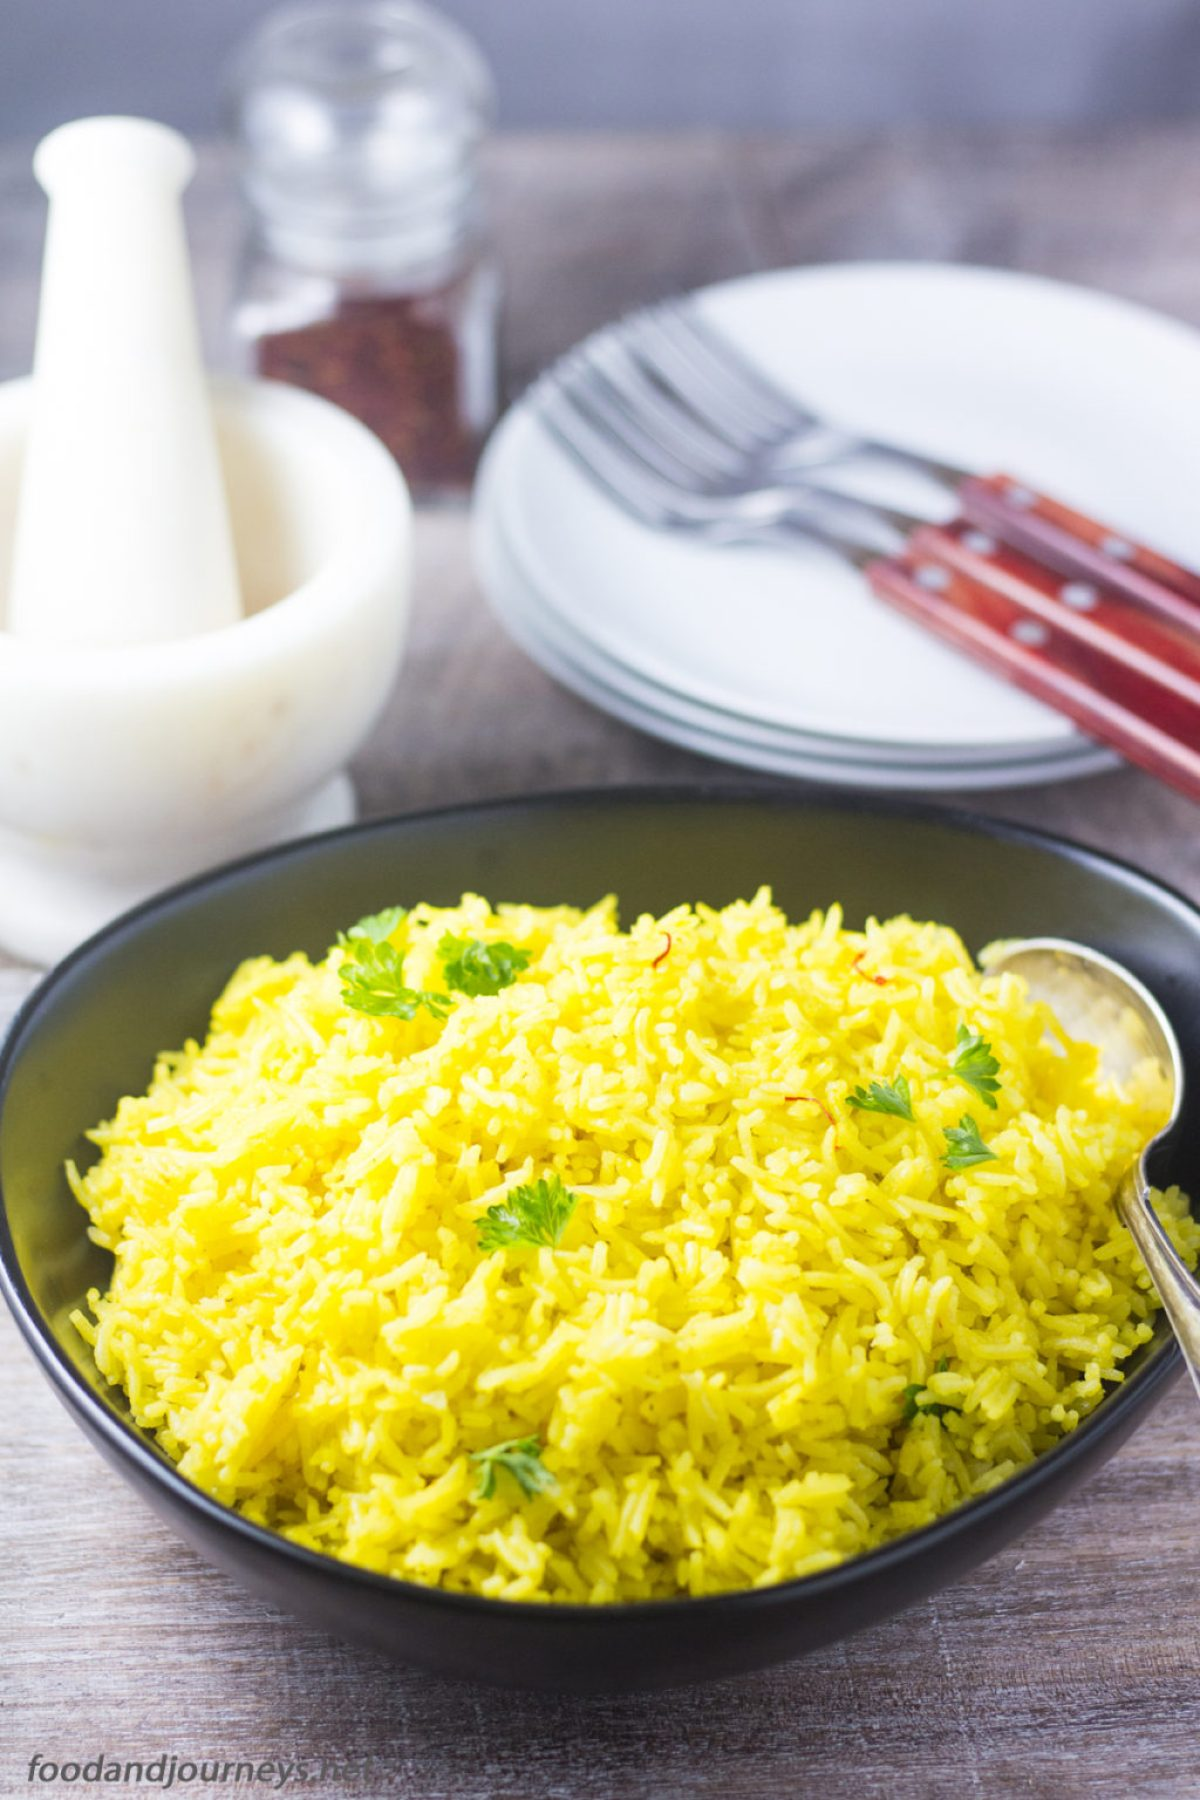 Saffron Rice|foodandjourneys.net